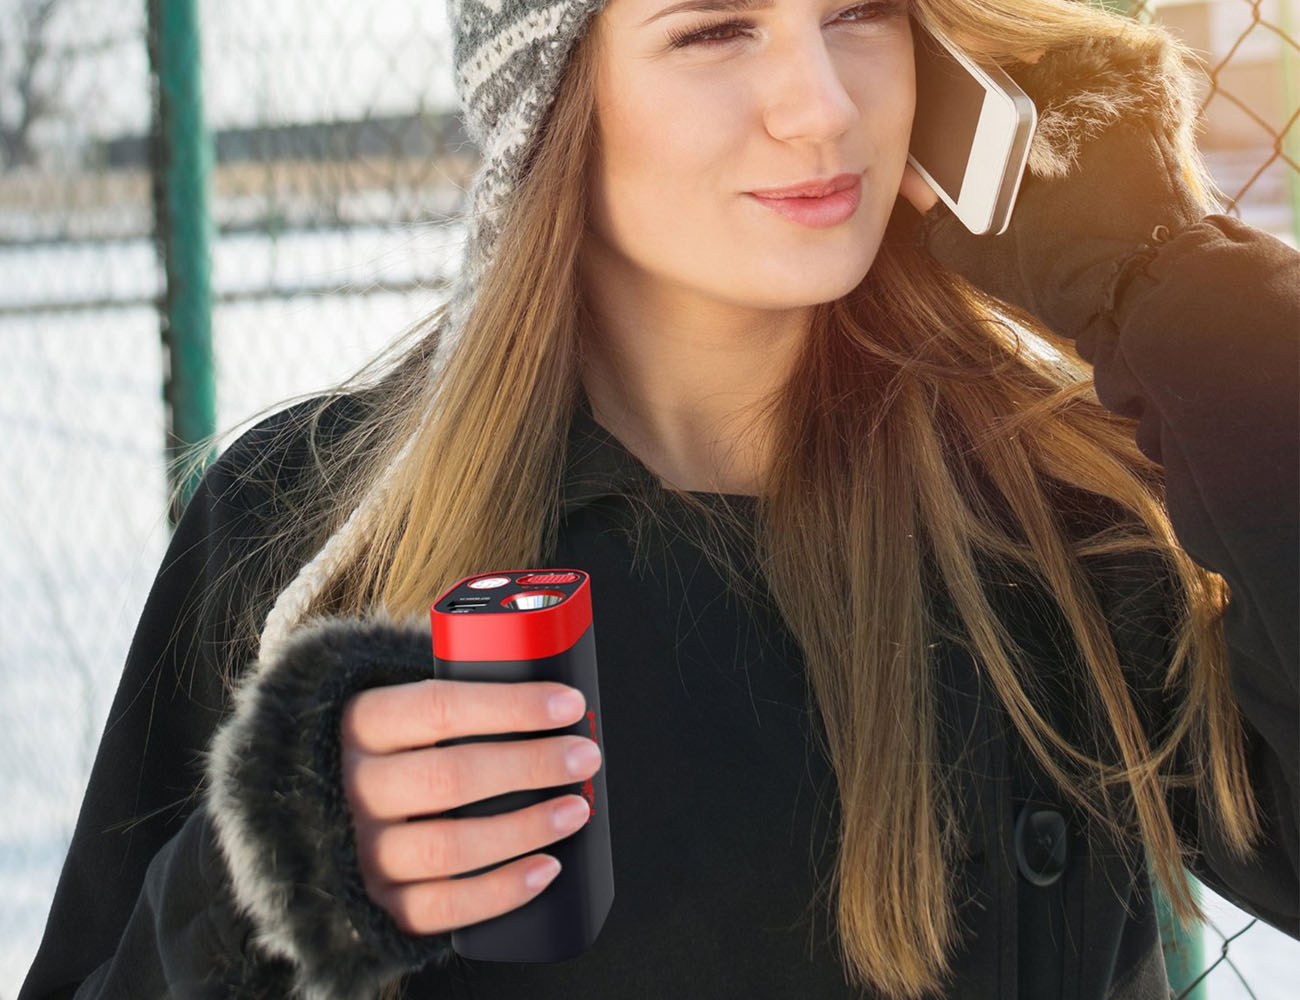 Kozy XL Rechargeable Hand Warmer and Portable Battery